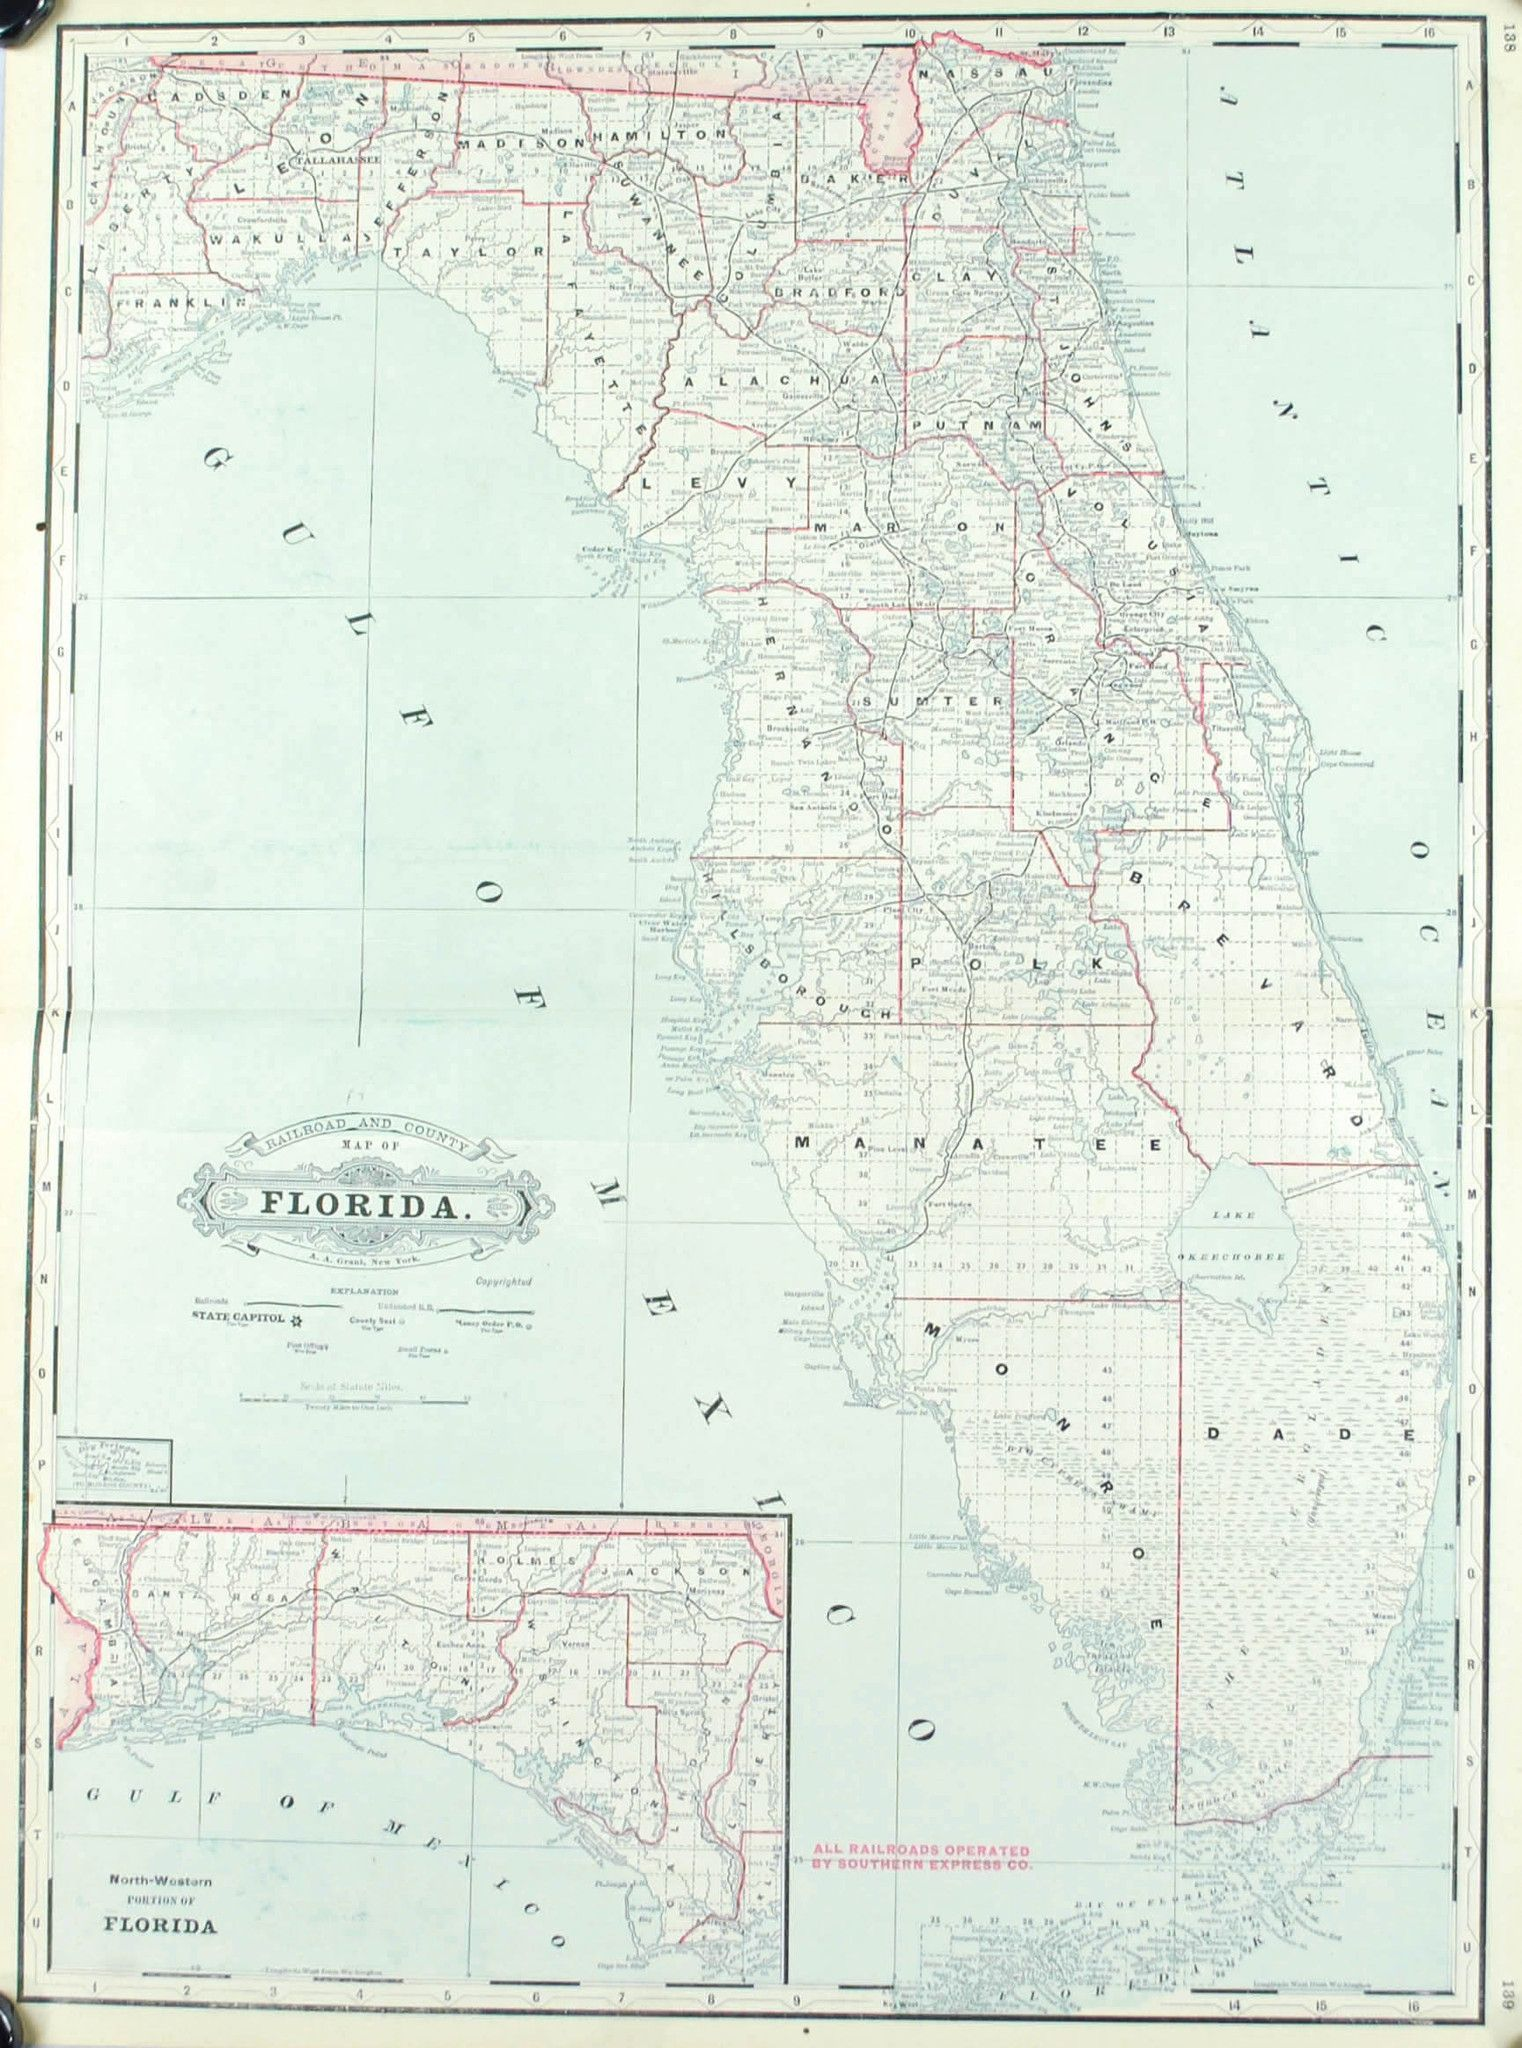 Florida Railroad Map.1887 Railroad And County Map Of Florida Railroads Pinterest